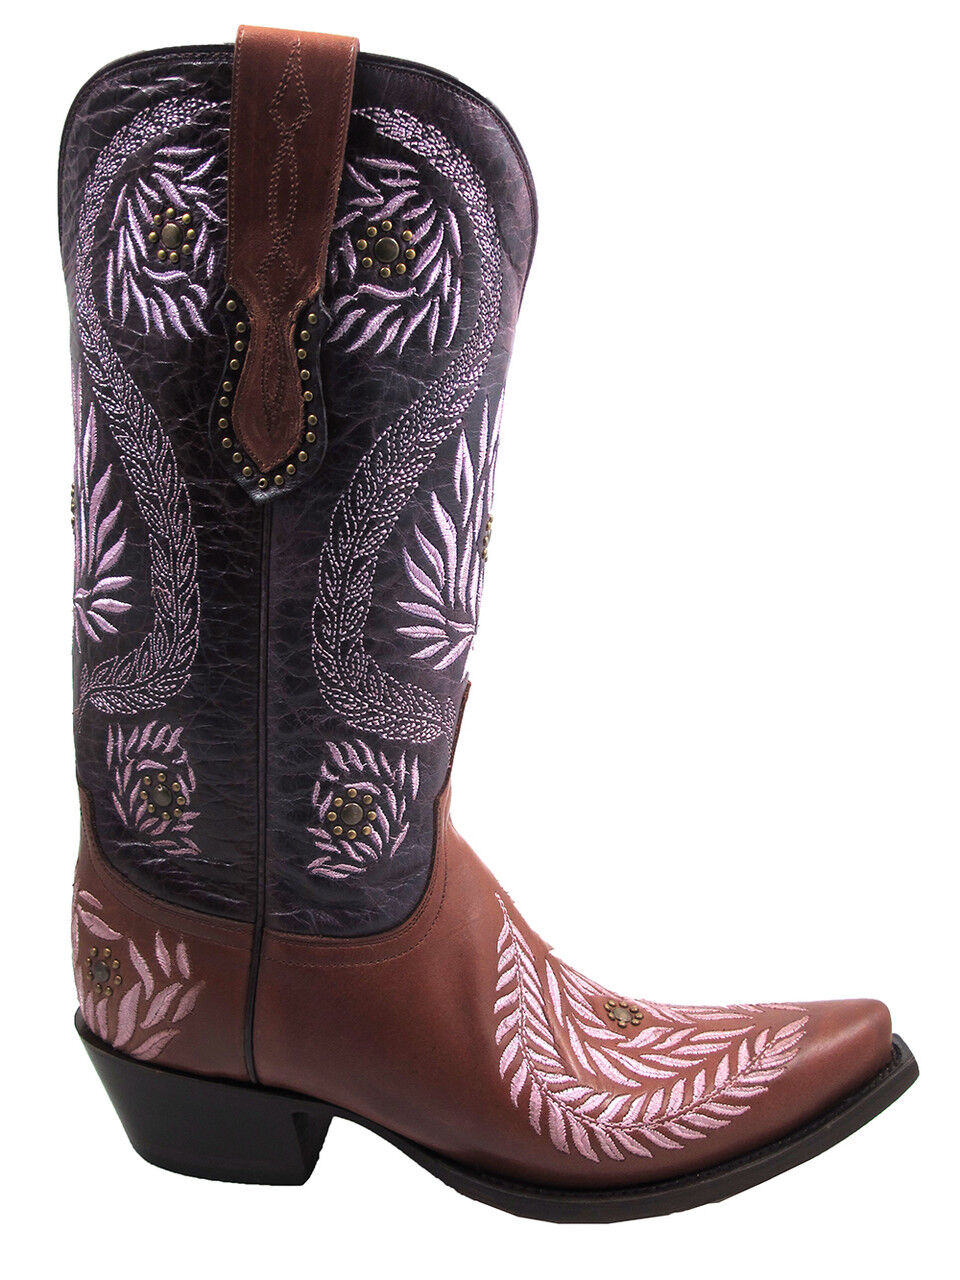 Women's Lucchese 1883 M4836.S54 Ornamental Laurel Leaf Cognac/Purple Cowgirl Boo